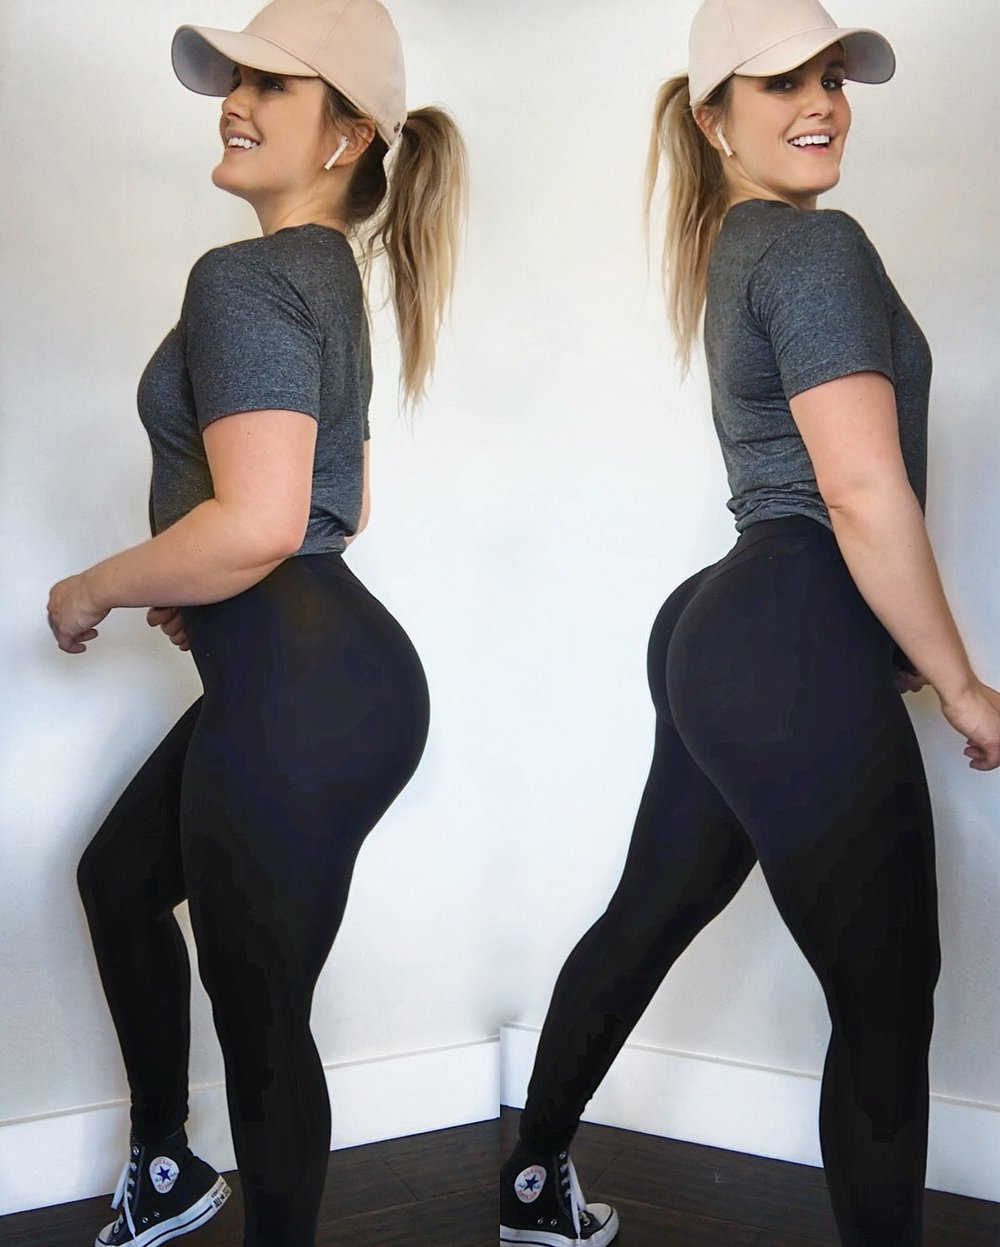 should you lift heavy weights or light weights to build a booty